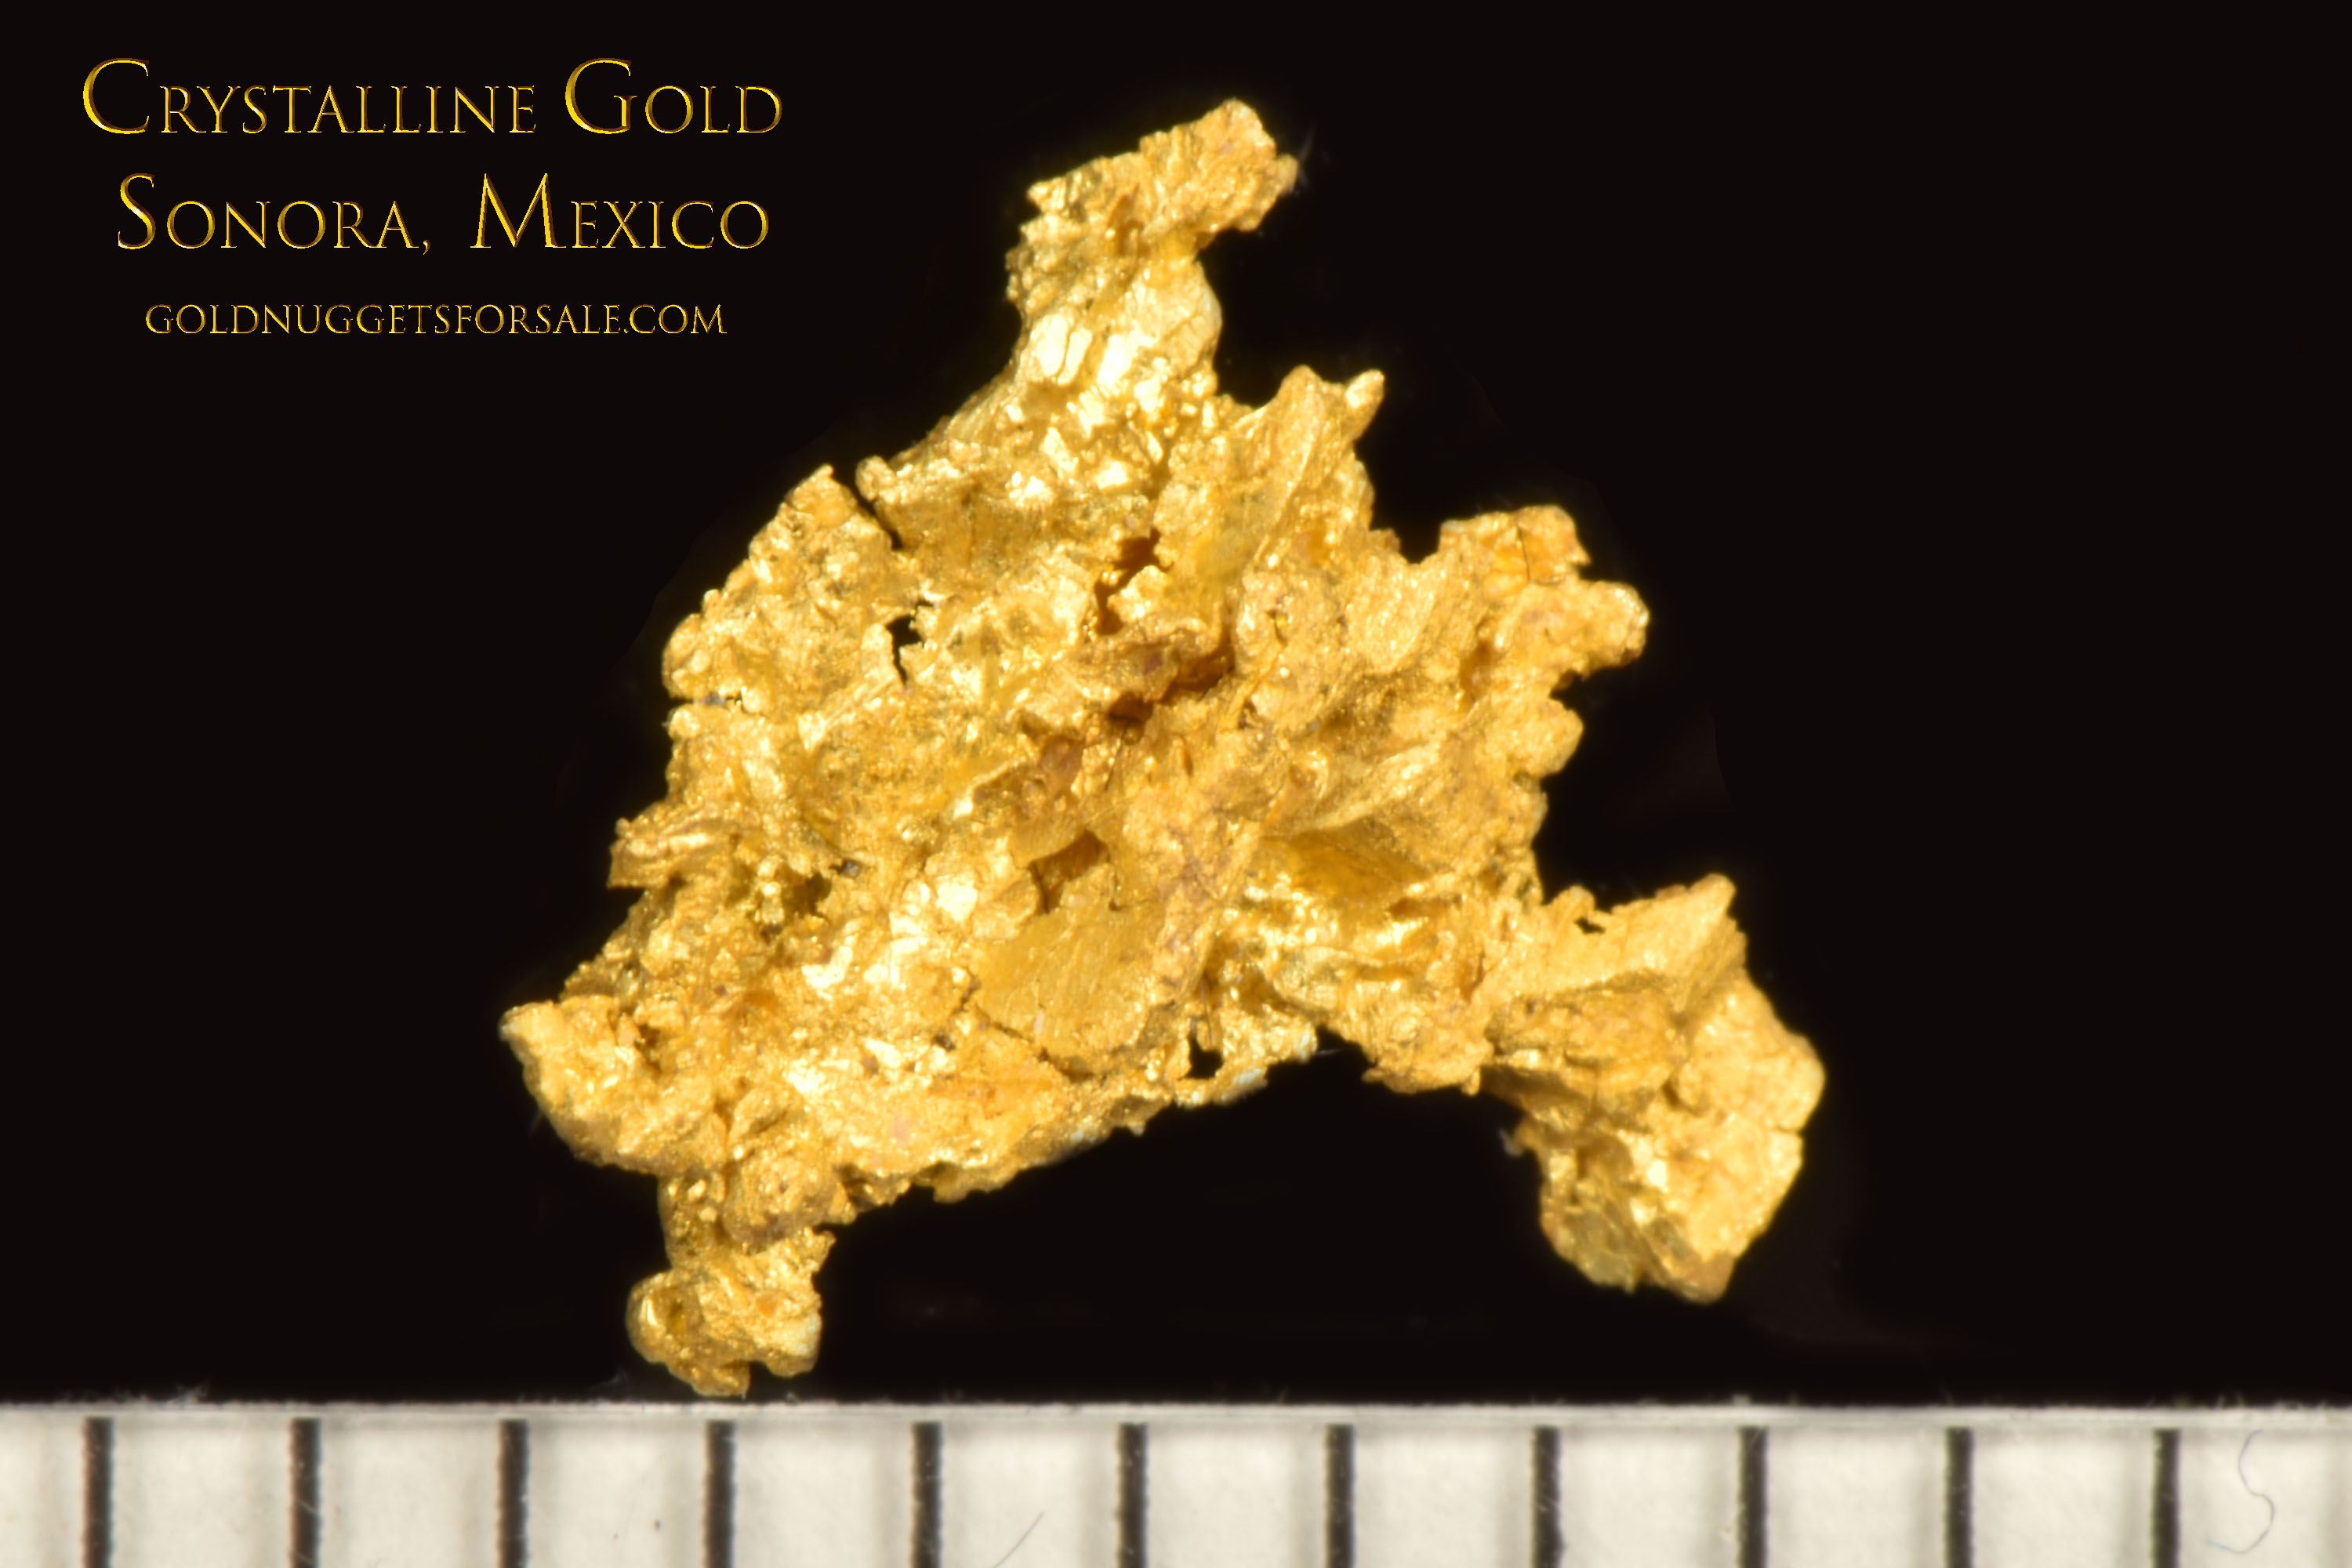 Spectacular Crystalline Gold with Gold crystals - Sonora, Mexico